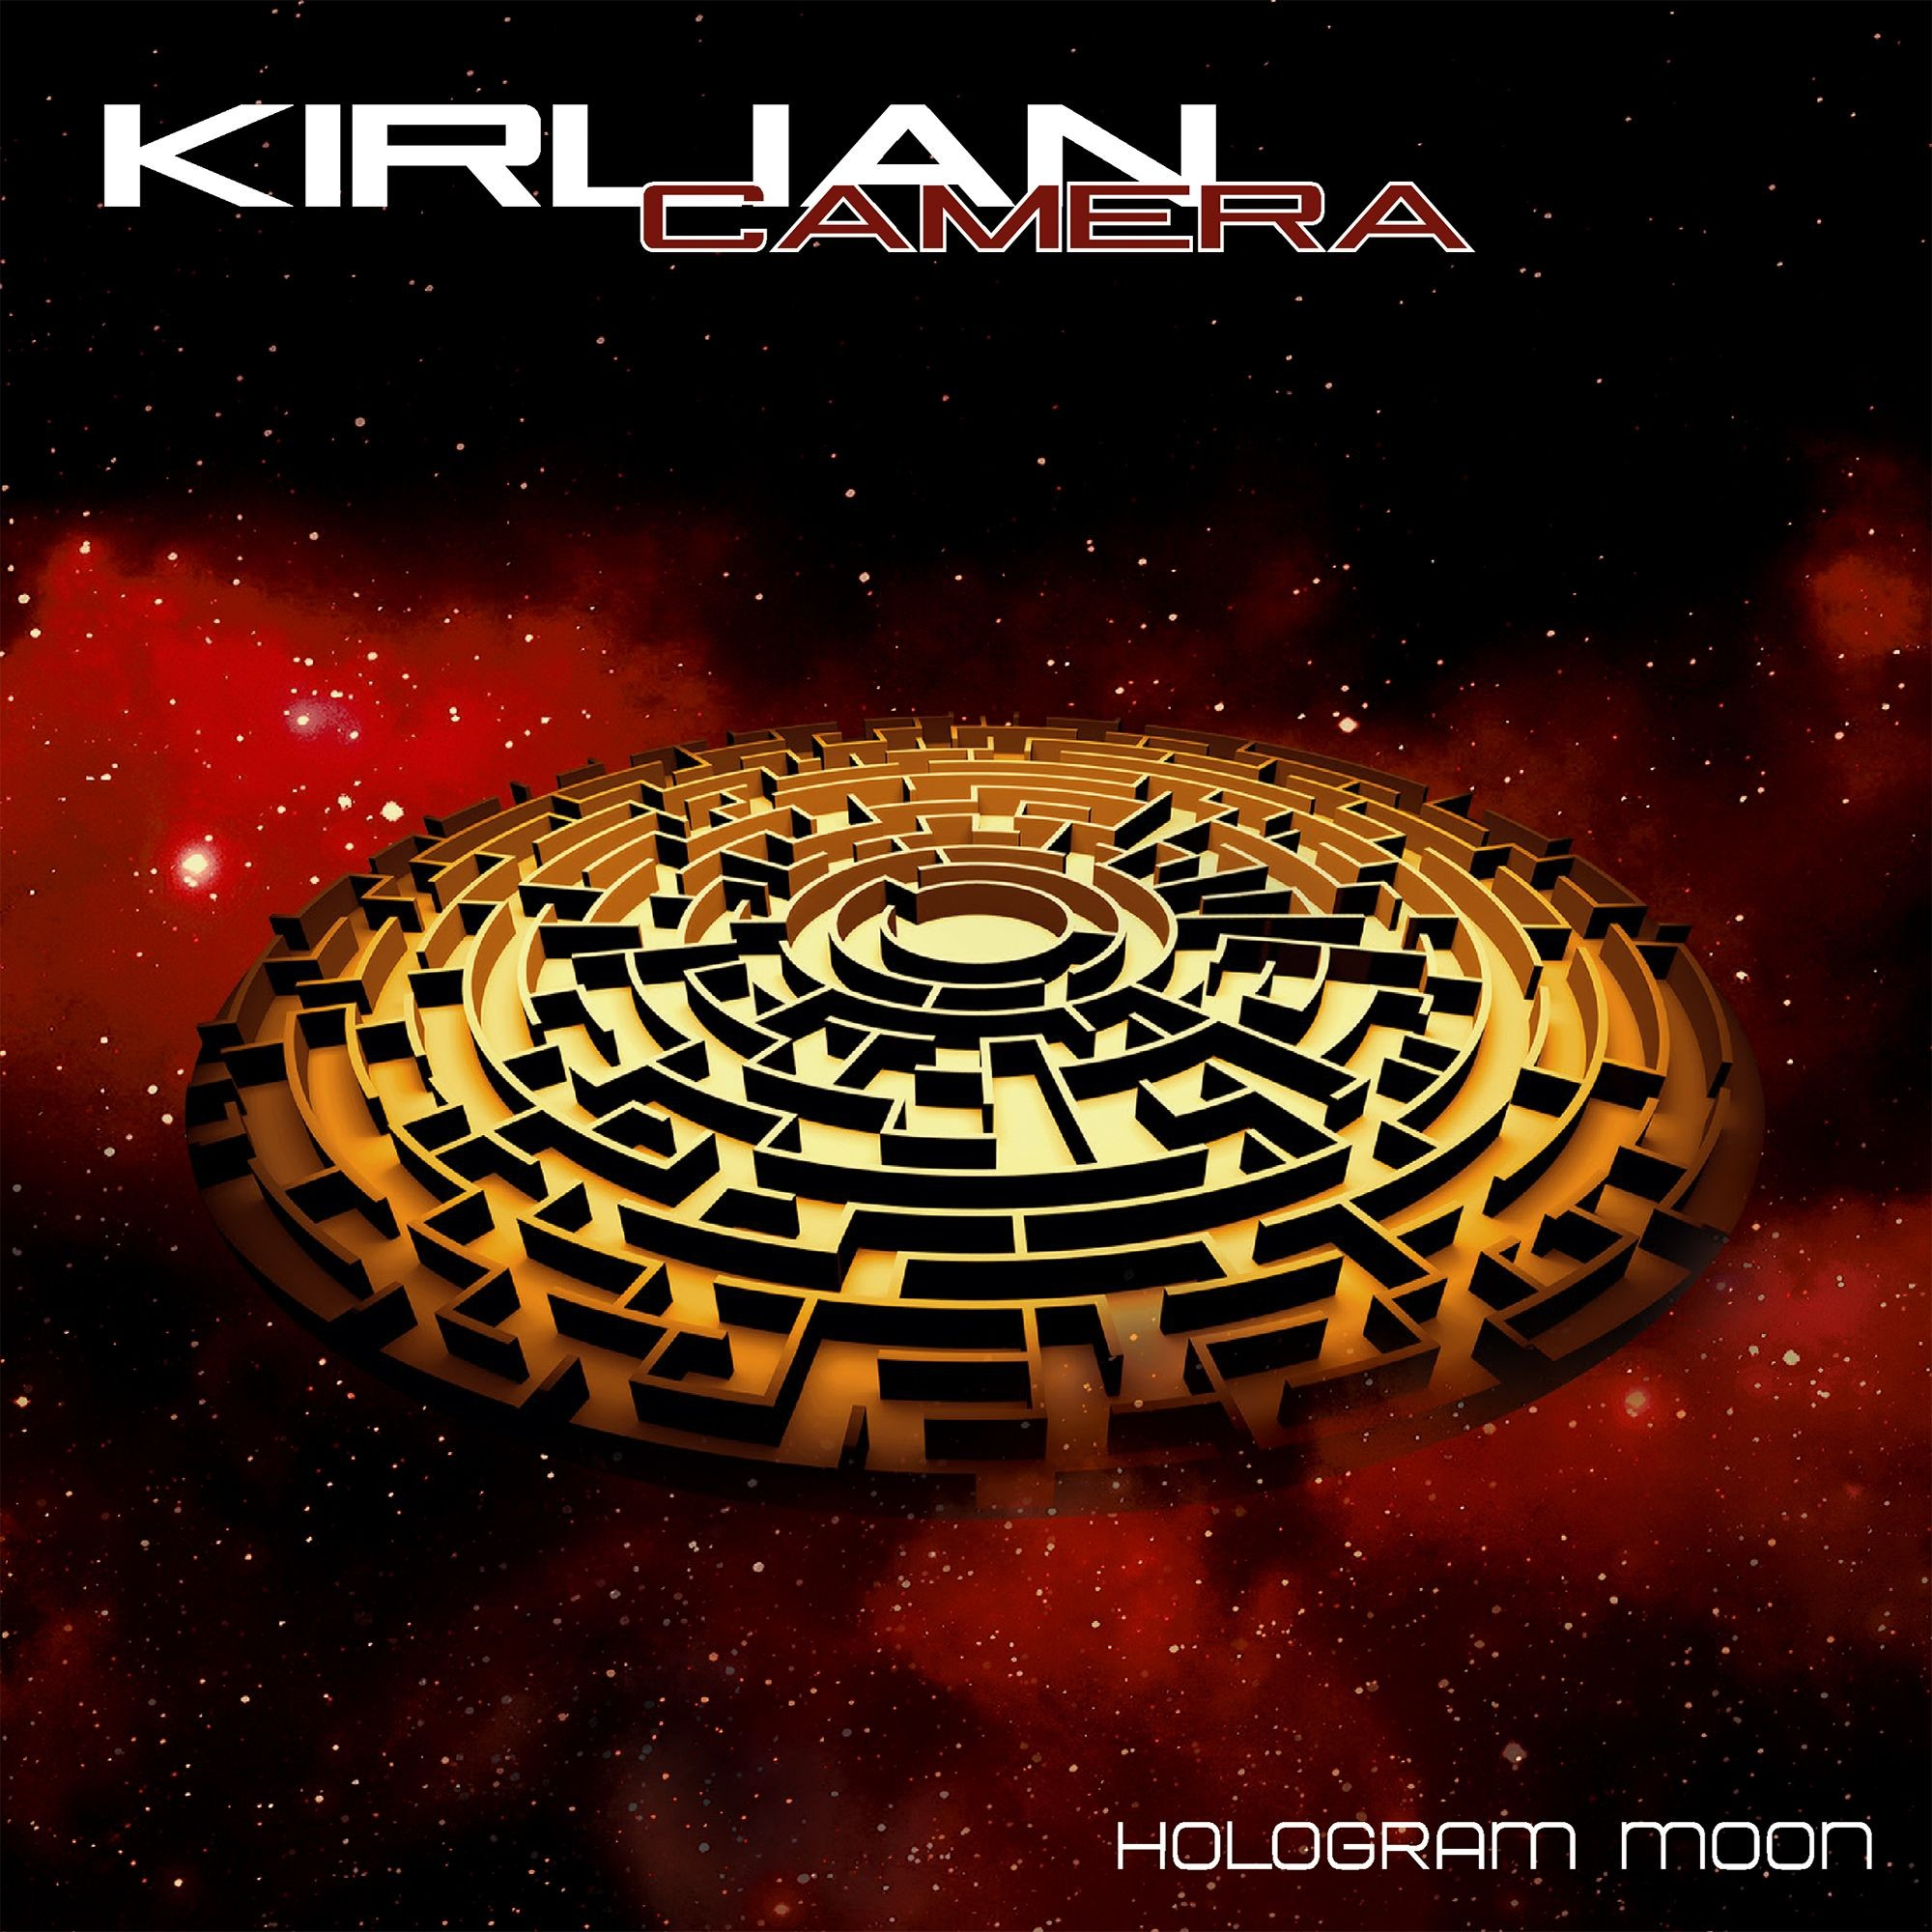 Kirlian Camera - Hologram Moon (Limited Edition) - 2CD Book